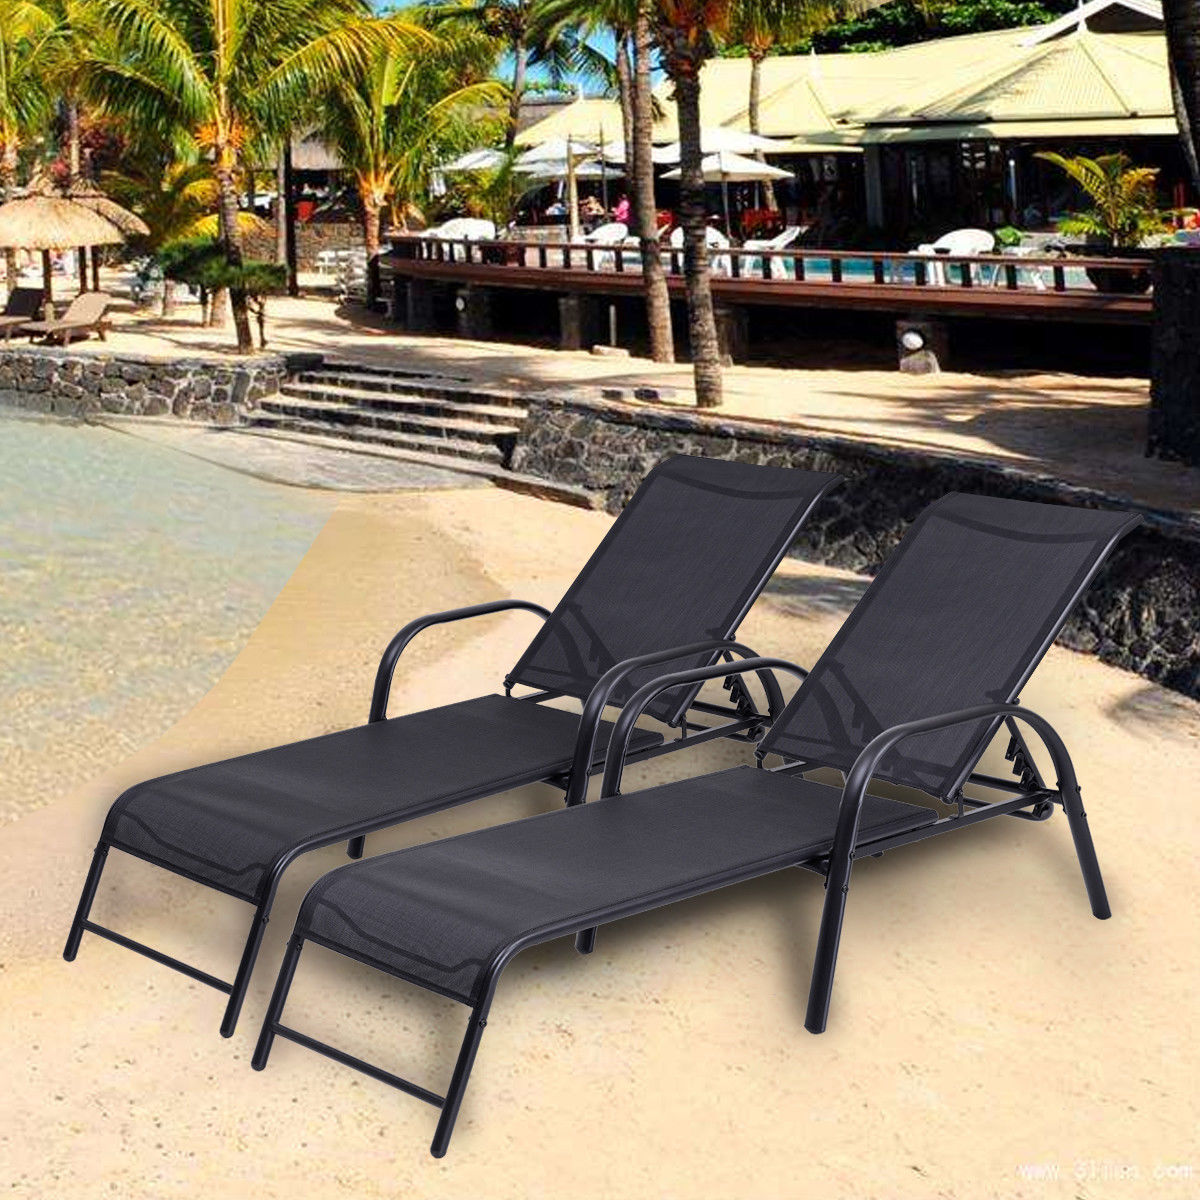 Costway Set of 2 Patio Lounge Chairs Sling Chaise Lounges Recliner Adjustable Back by Costway